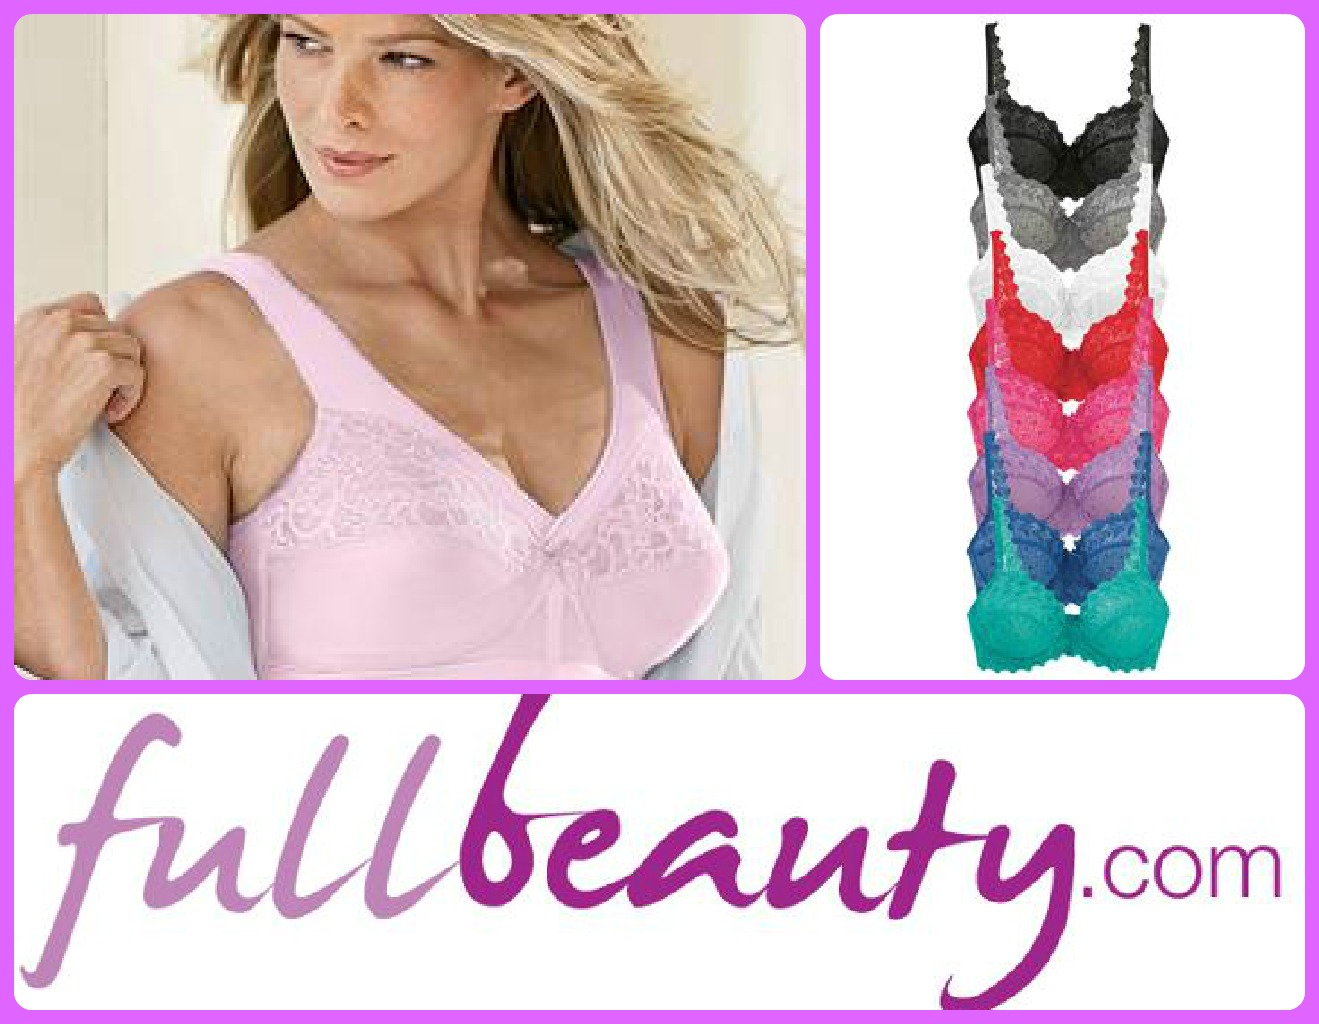 moderngamethrones.ga | fullbeauty is your favorite plus-size marketplace, sizes with unparalleled expertise in style and fit.